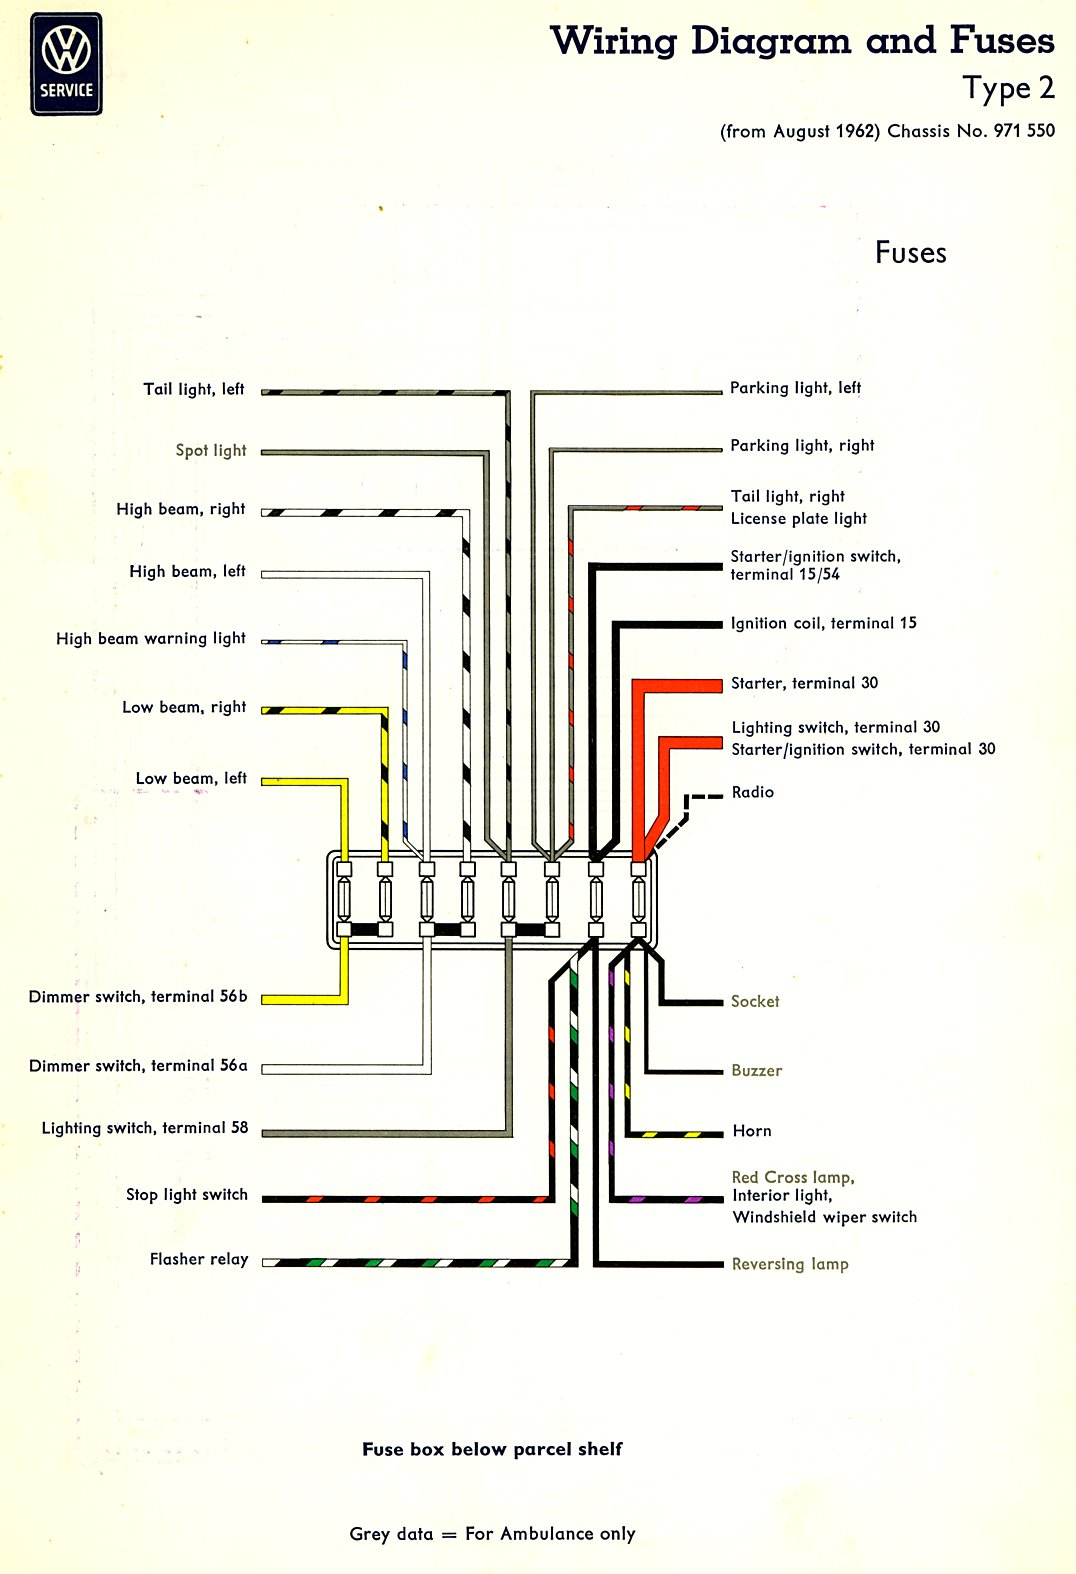 bus_63_fuses thesamba com type 2 wiring diagrams 1979 bronco fuse box diagram at crackthecode.co